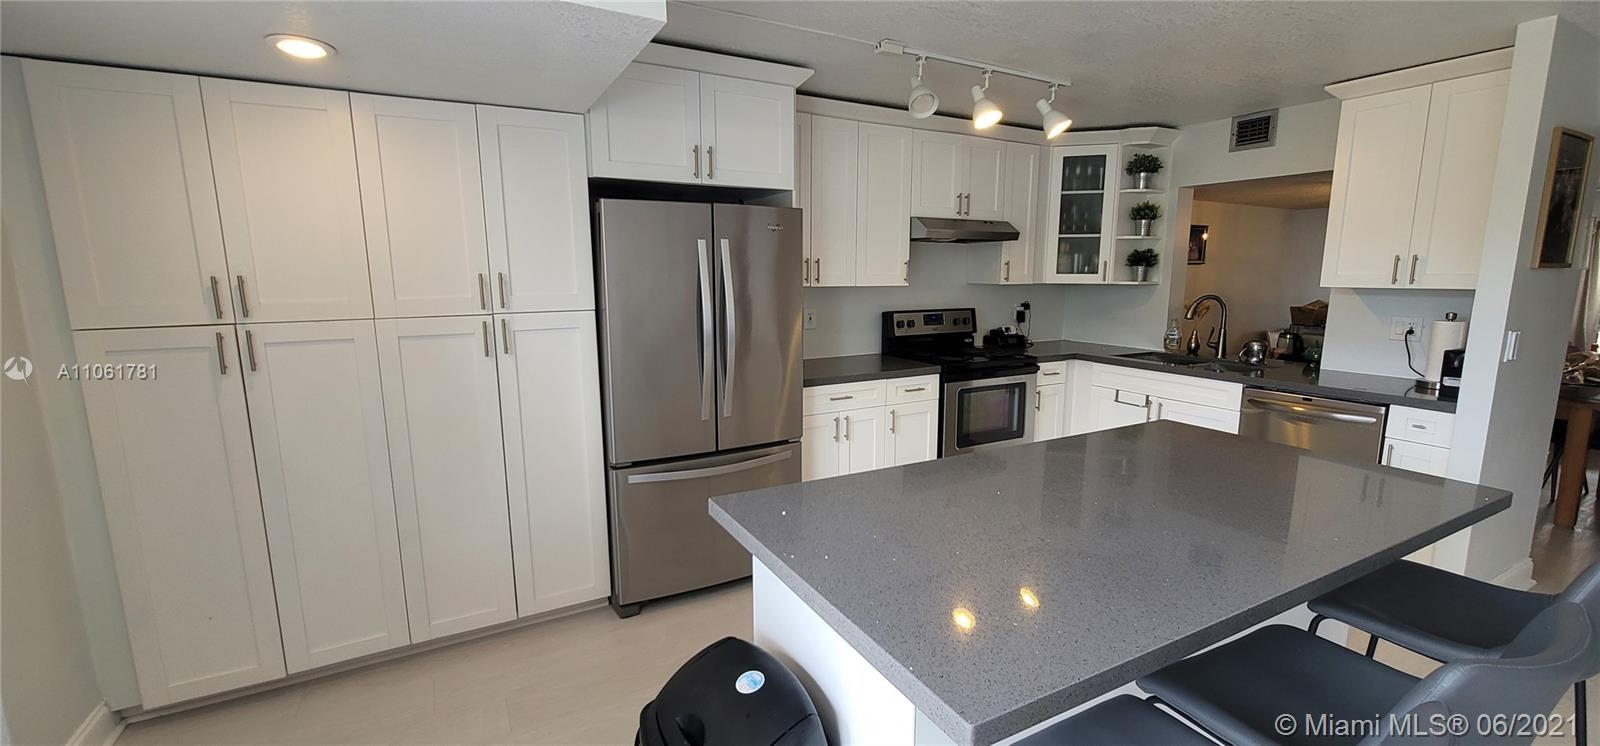 Renovated and well-kept two story - 2.5 bedroom townhome with 2.5 bathrooms in the highly coveted Ve